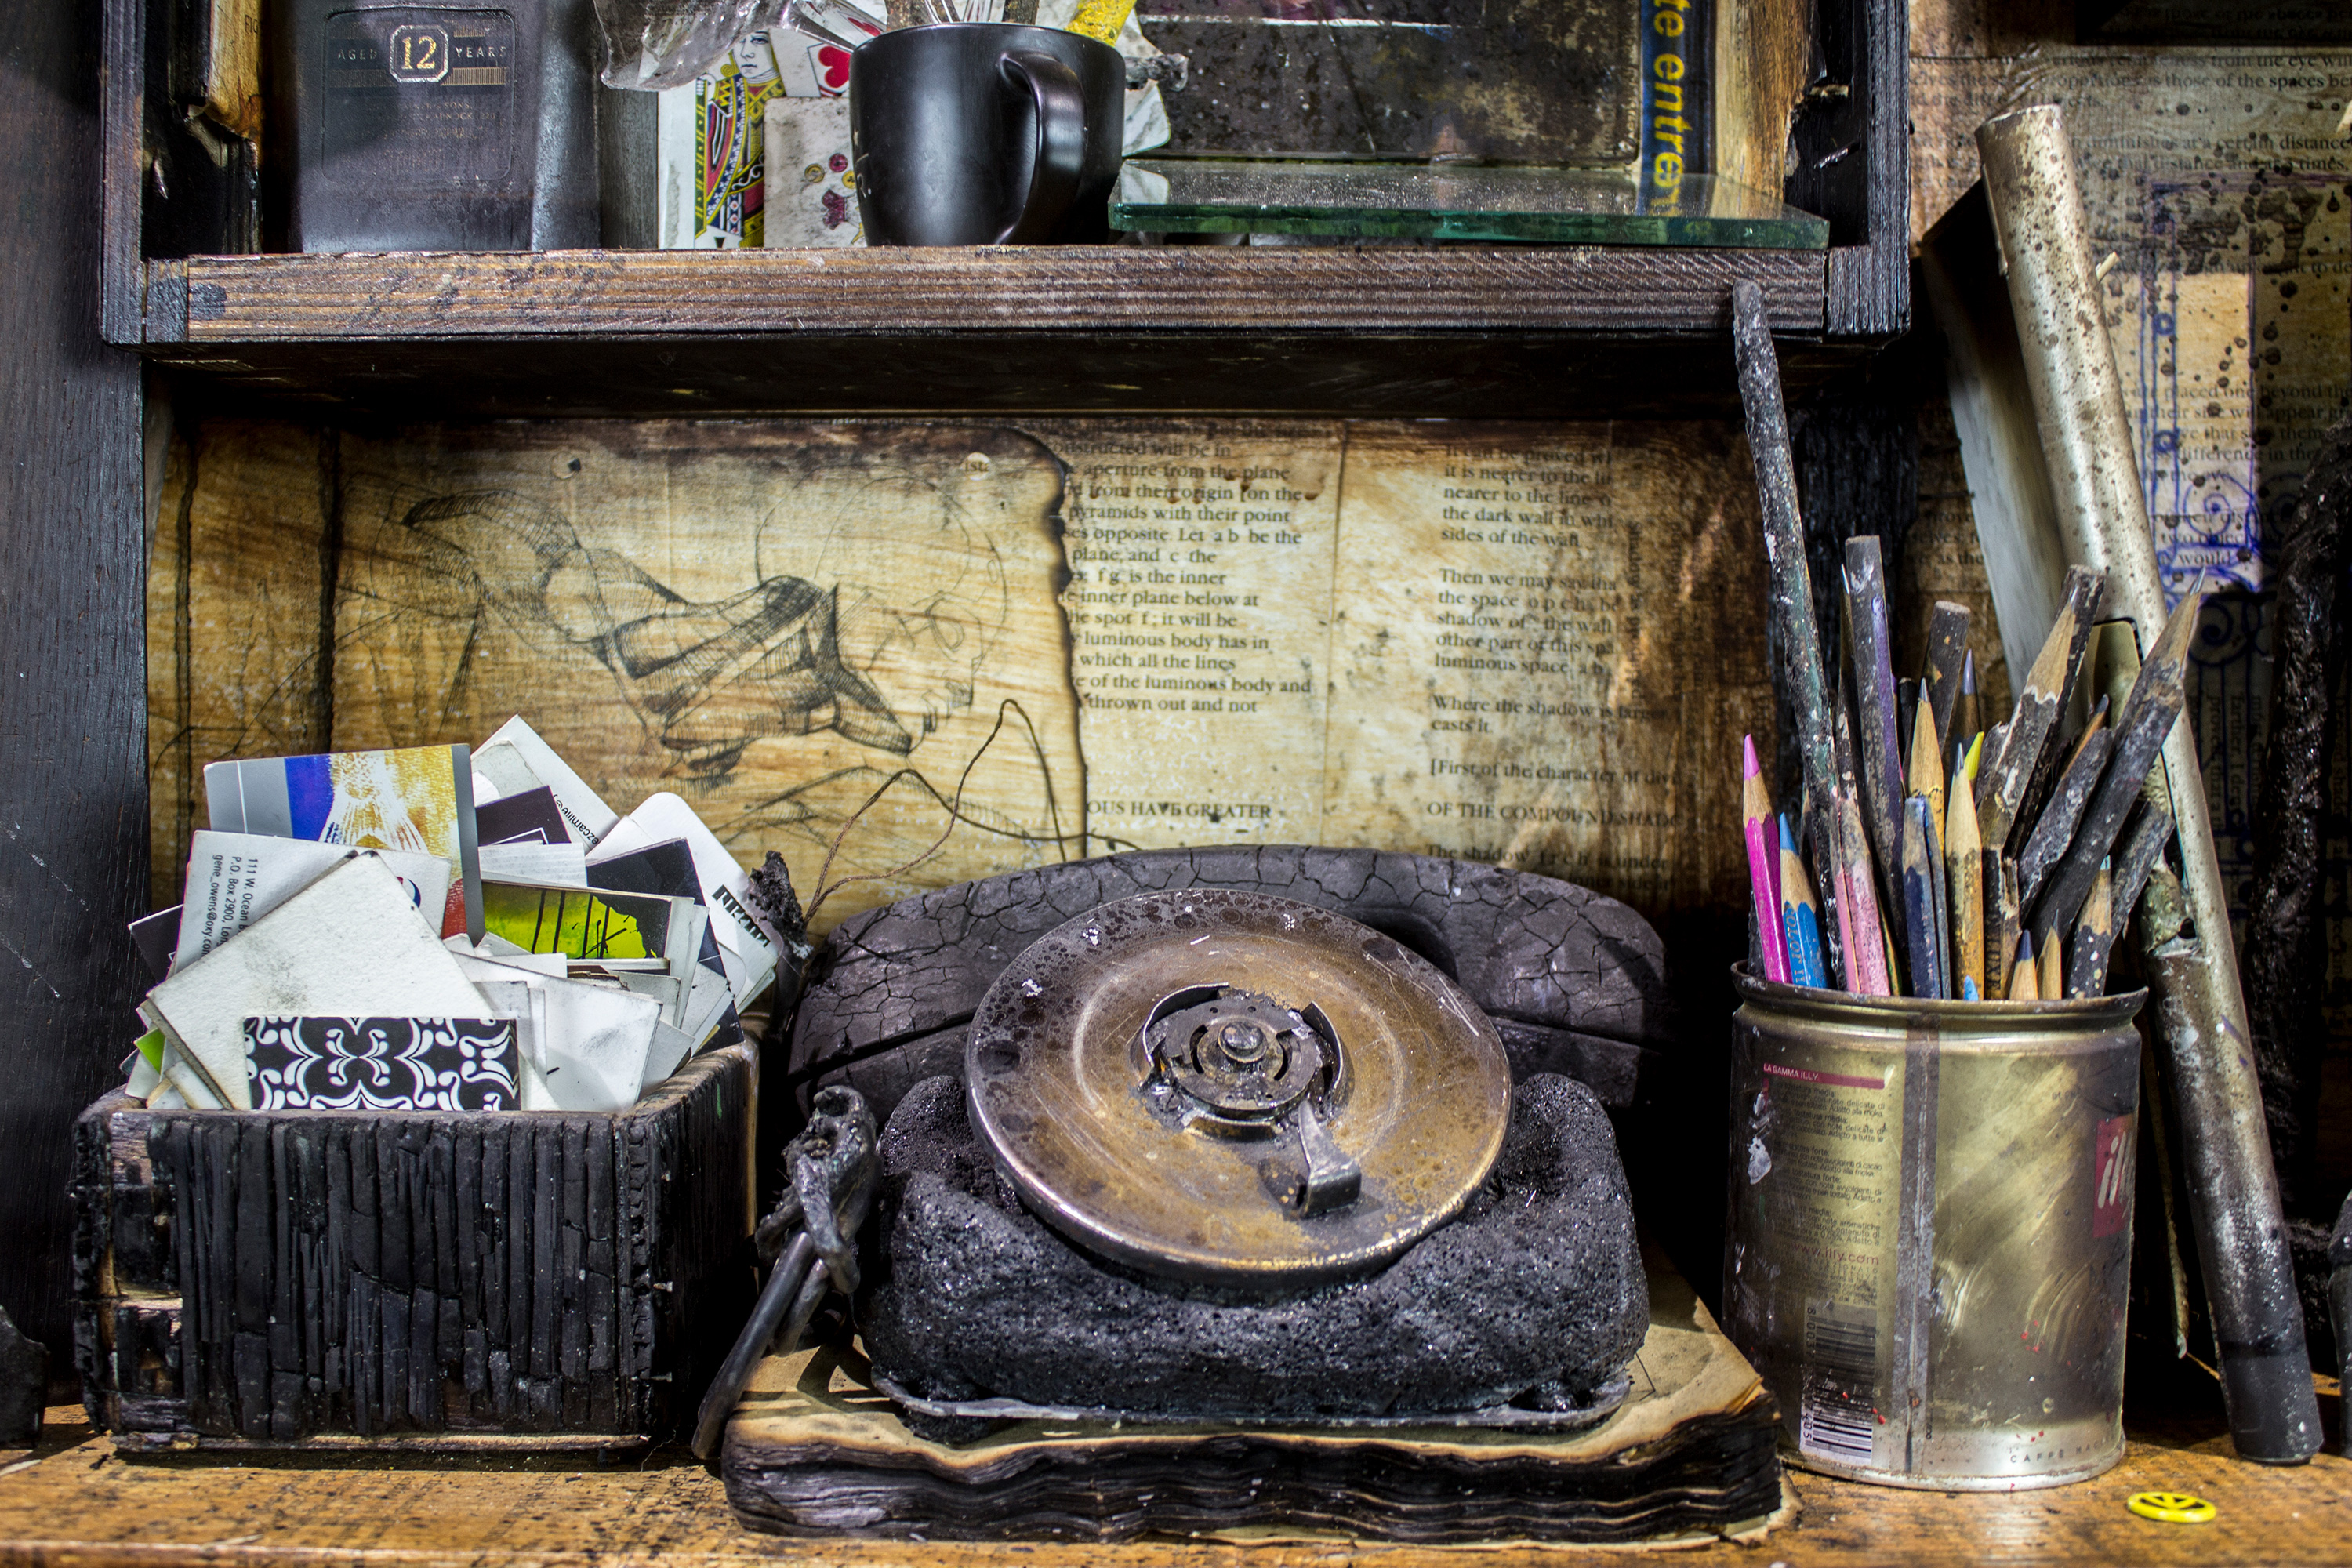 """""""Relax is only fire"""" - Wunderkammer - Wooden box made with the remains of the fire at Flavio's Studio - 64""""x32""""x11"""" - © Flavio Bisciotti"""